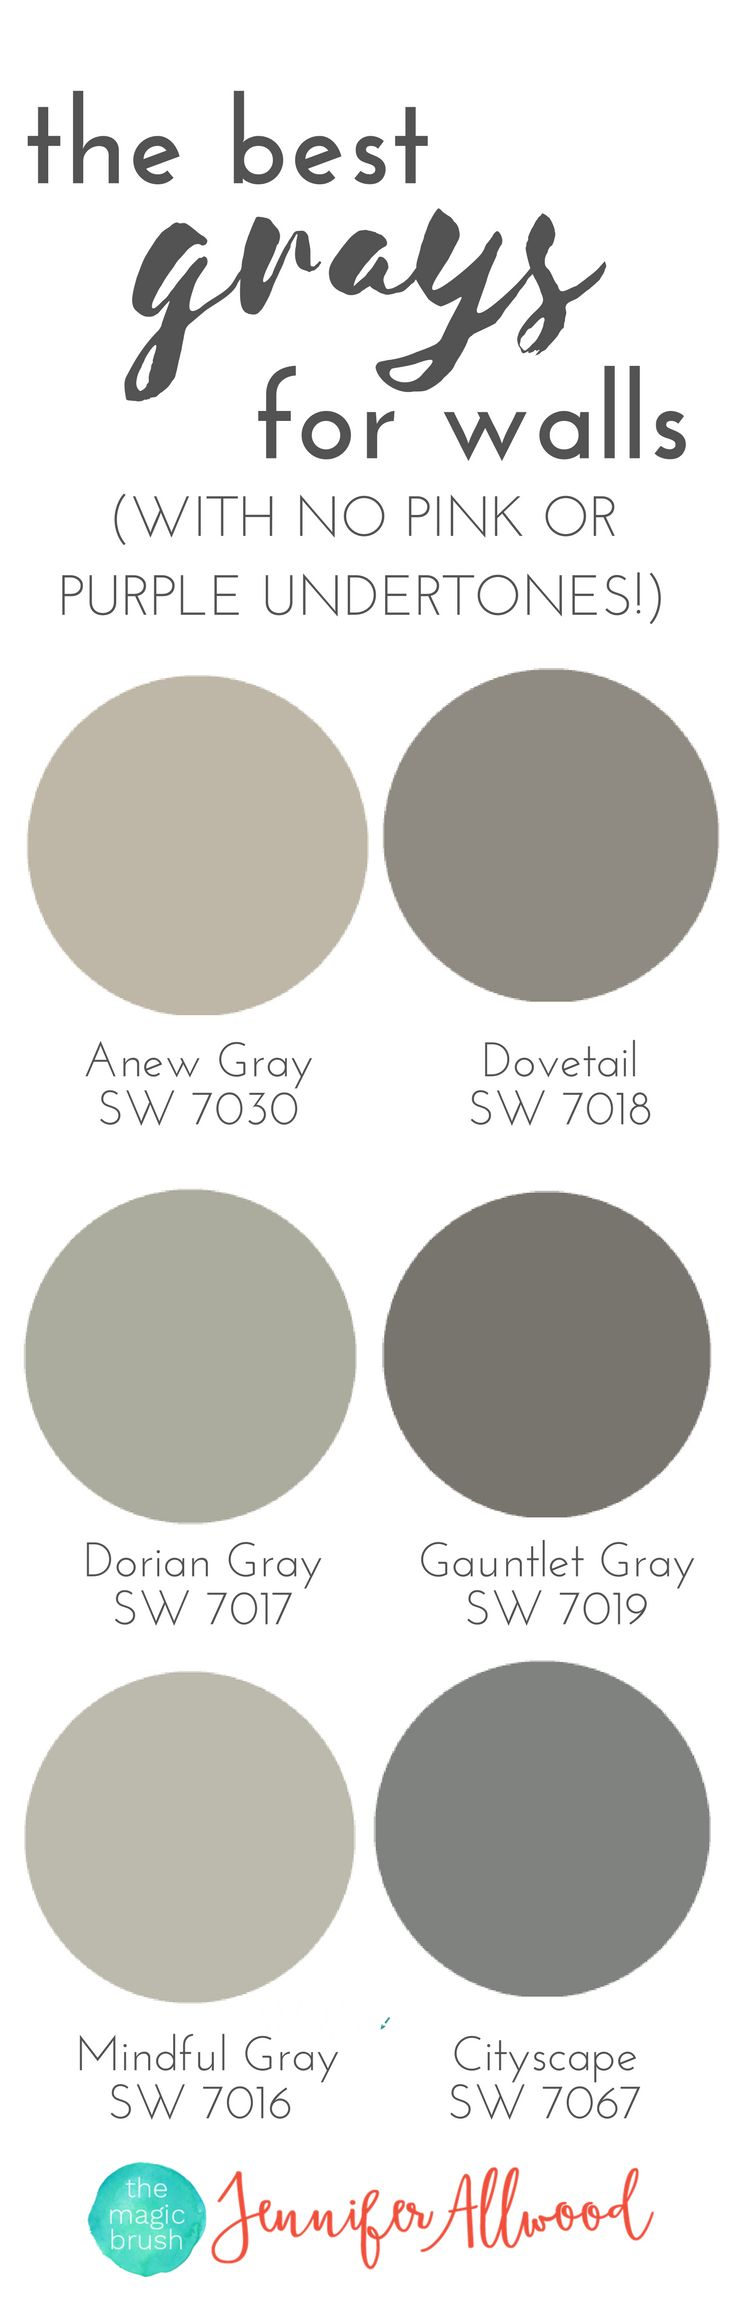 Top 5 gray paint colors for selling your home top gray for Top 5 living room paint colors